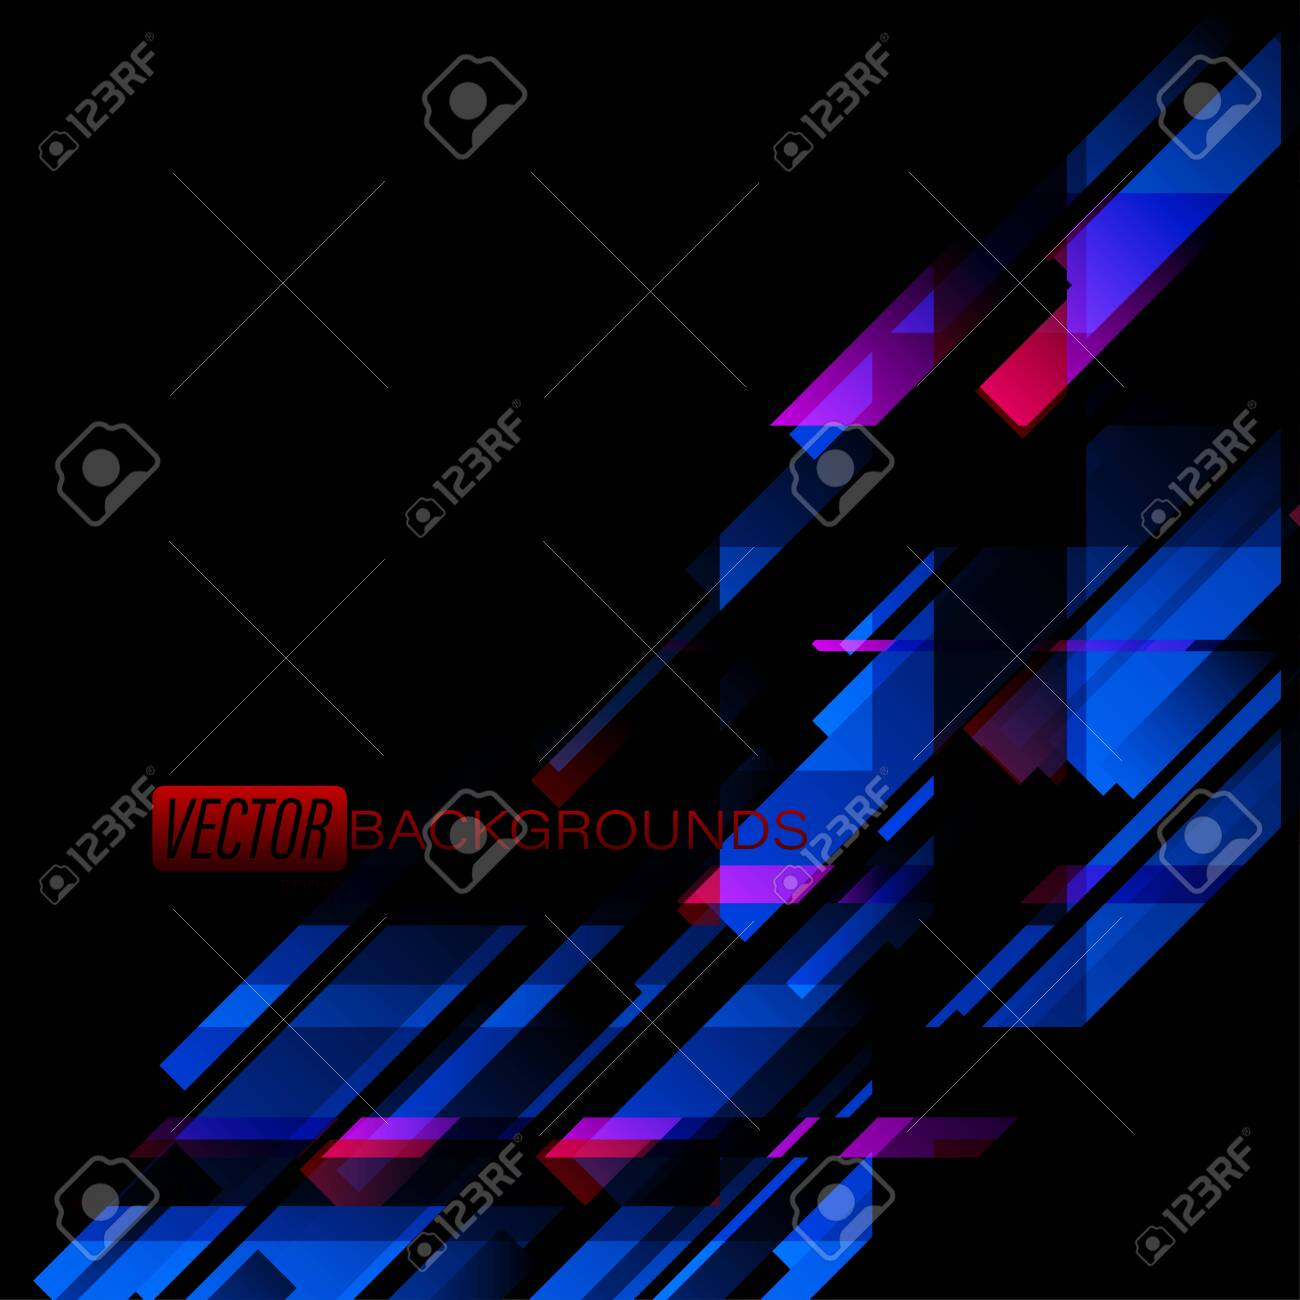 Abstract Geometric Dark And Blue Colors On A Black Scene Vector